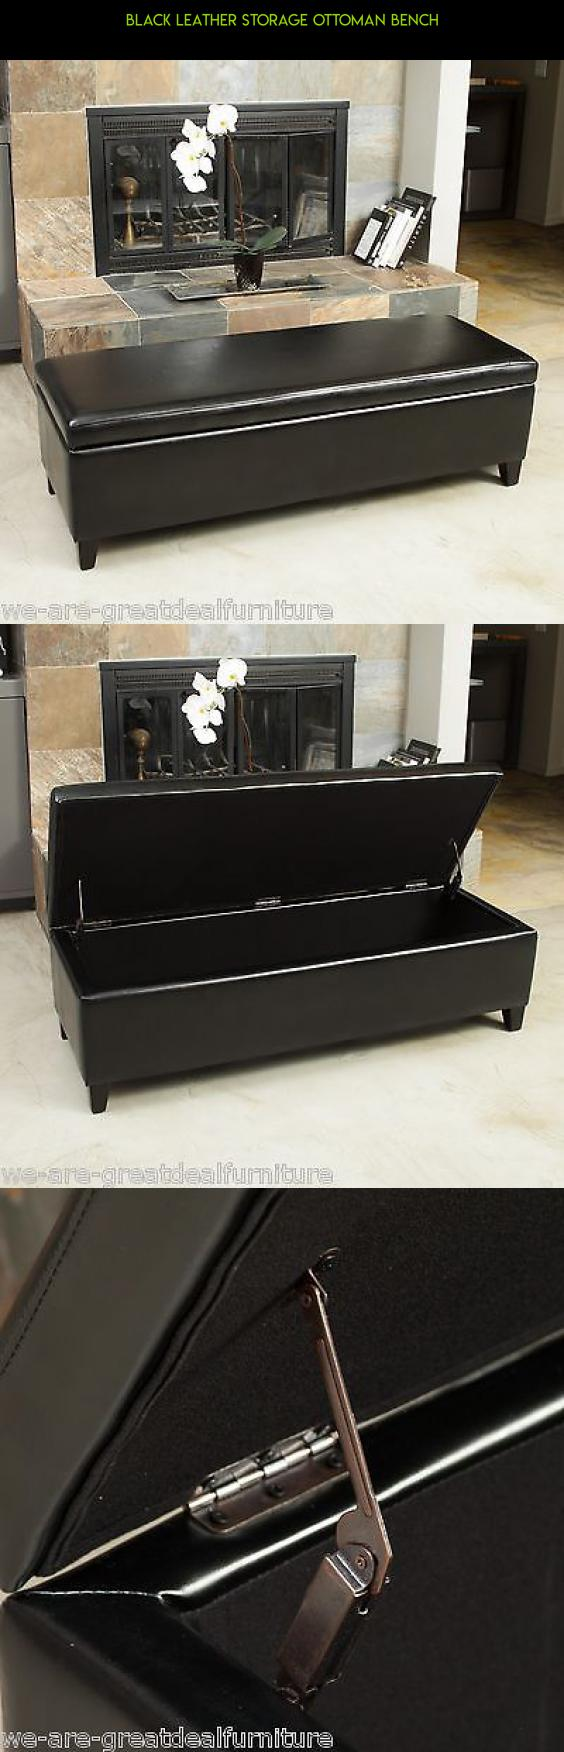 Storage Ottoman Plans Black Leather Storage Ottoman Bench Shopping Storage Kit